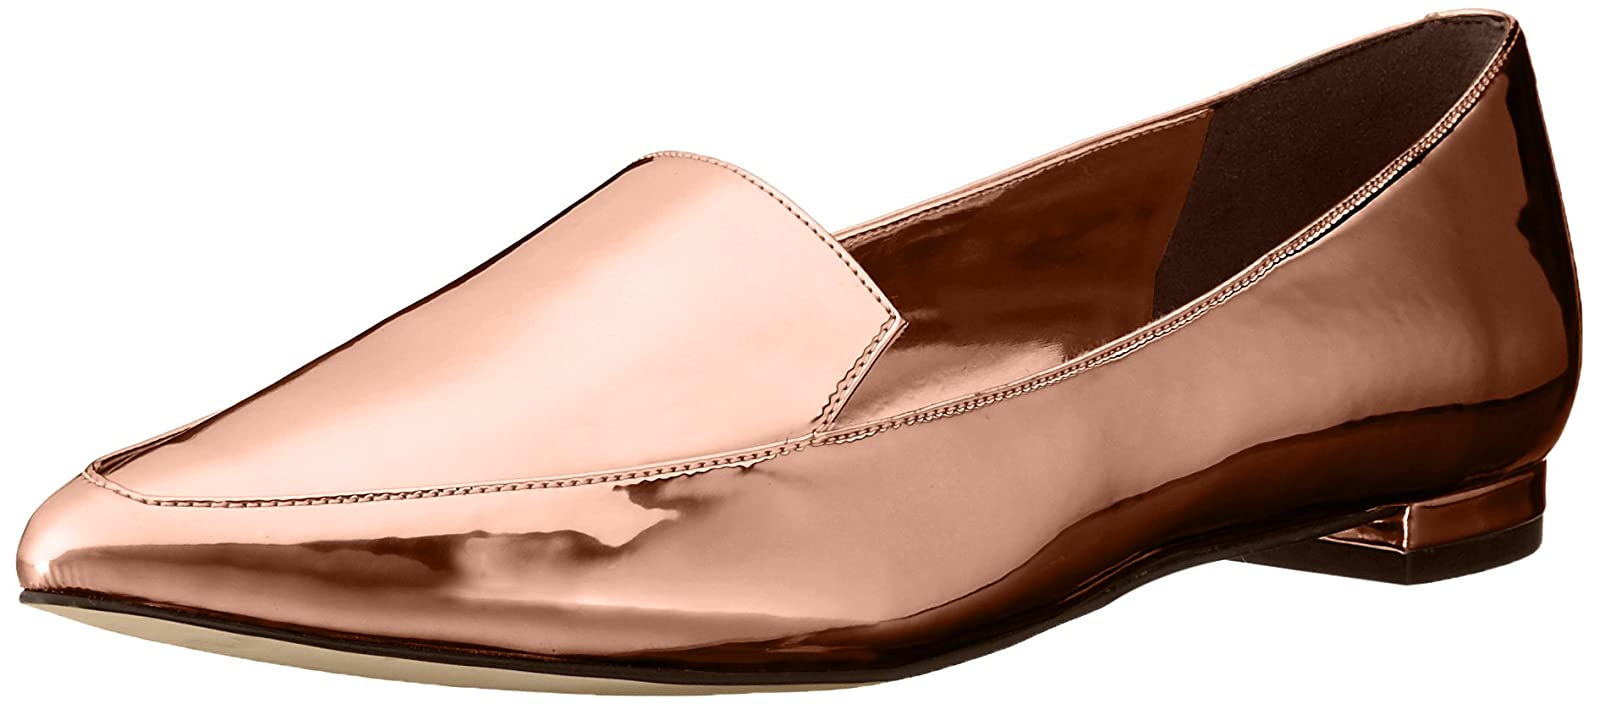 Nine West Women's Abay Patent Pointed Toe Flat US - 1